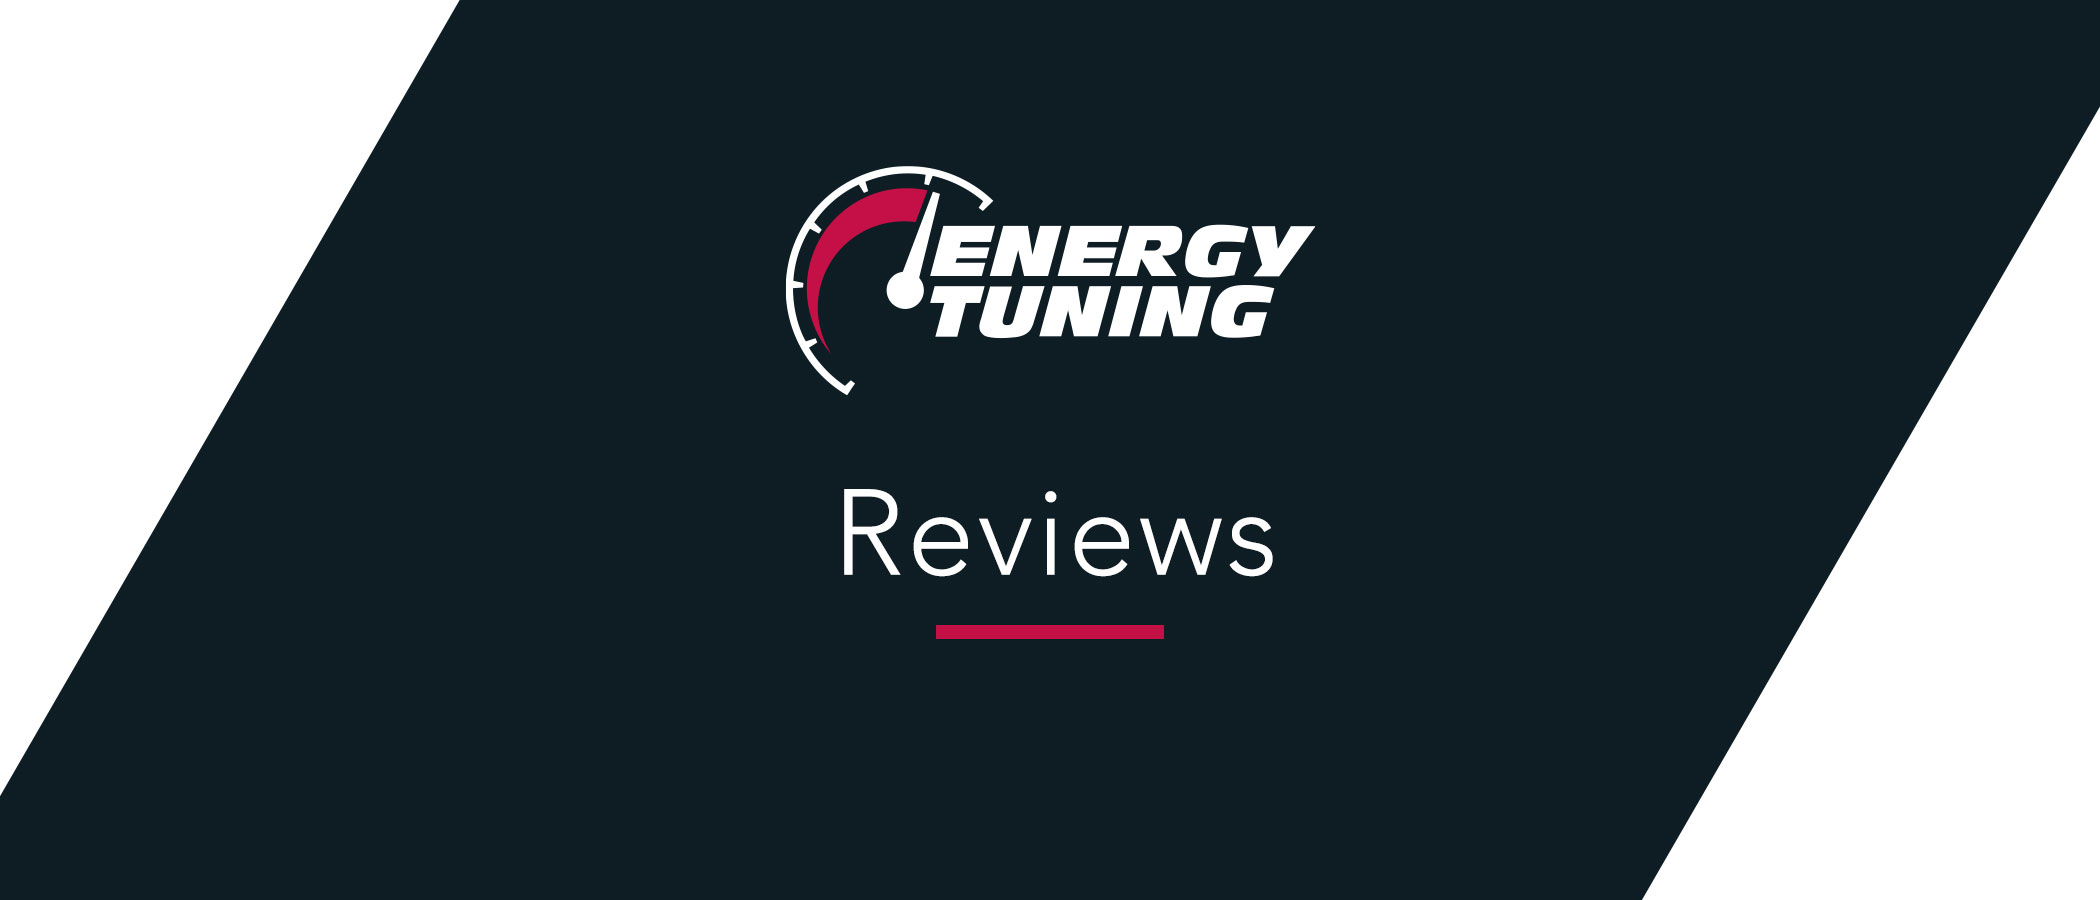 Energy Tuning Reviews